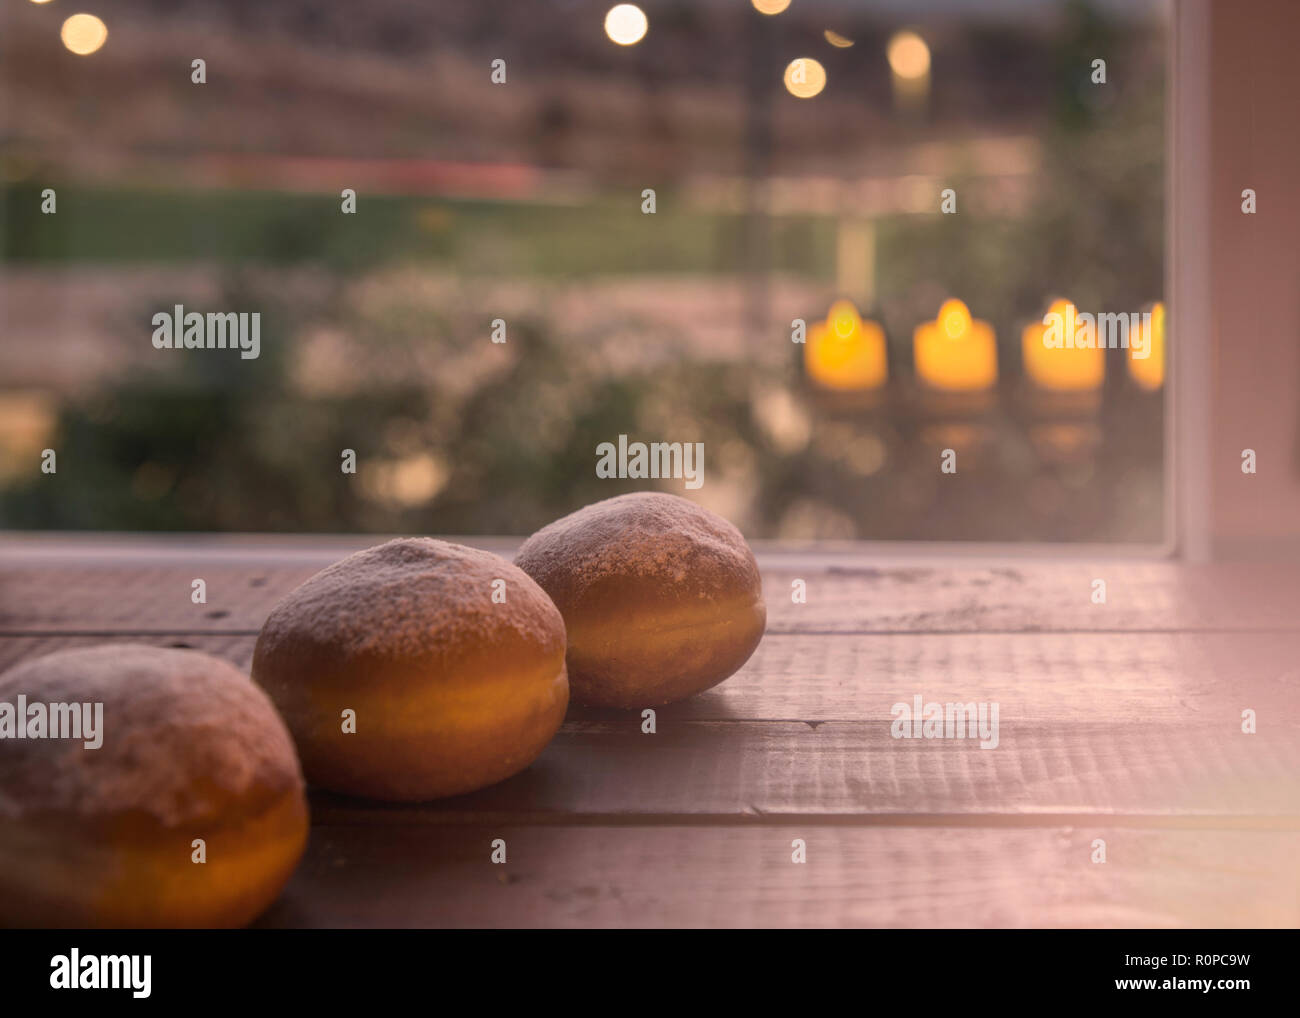 Still life for jewish holiday Hanukkah with 3 Donuts and Candlelights Reflection on the Window.Shallow DOF.Hanukkah celebration concept. - Stock Image